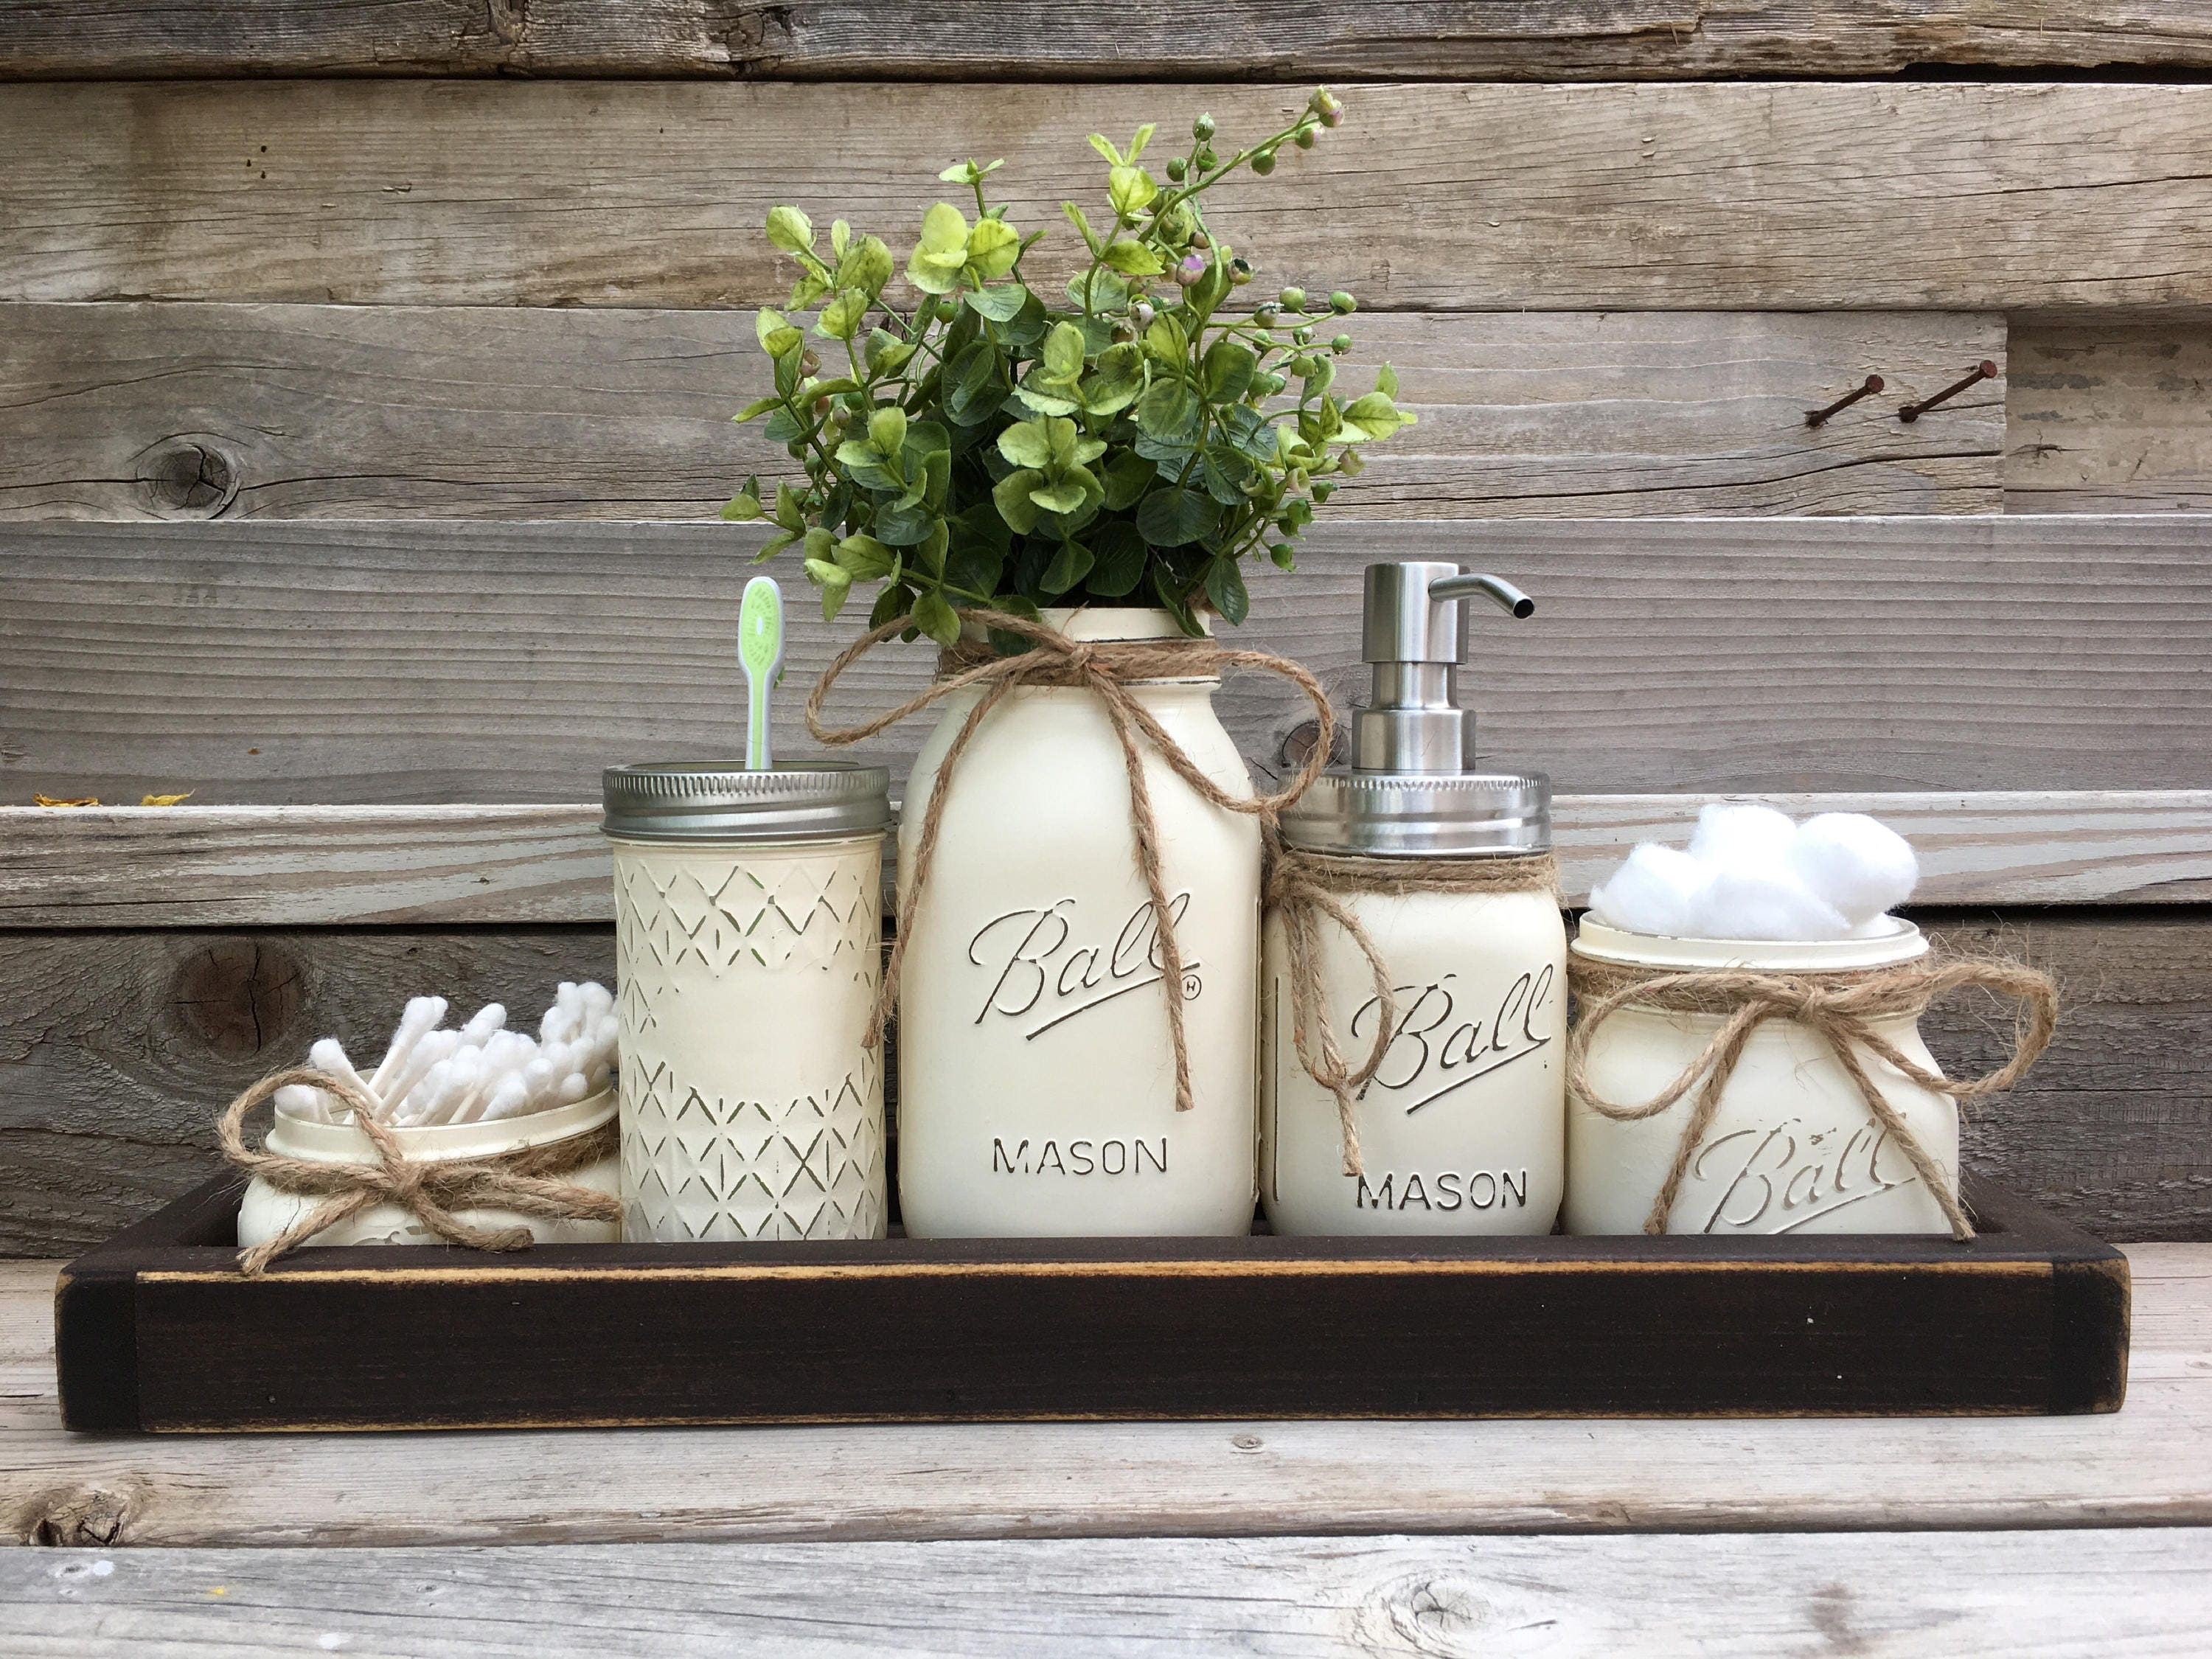 Rustic Bathroom Decor Farmhouse Bathroom Decor Mason Jar ...